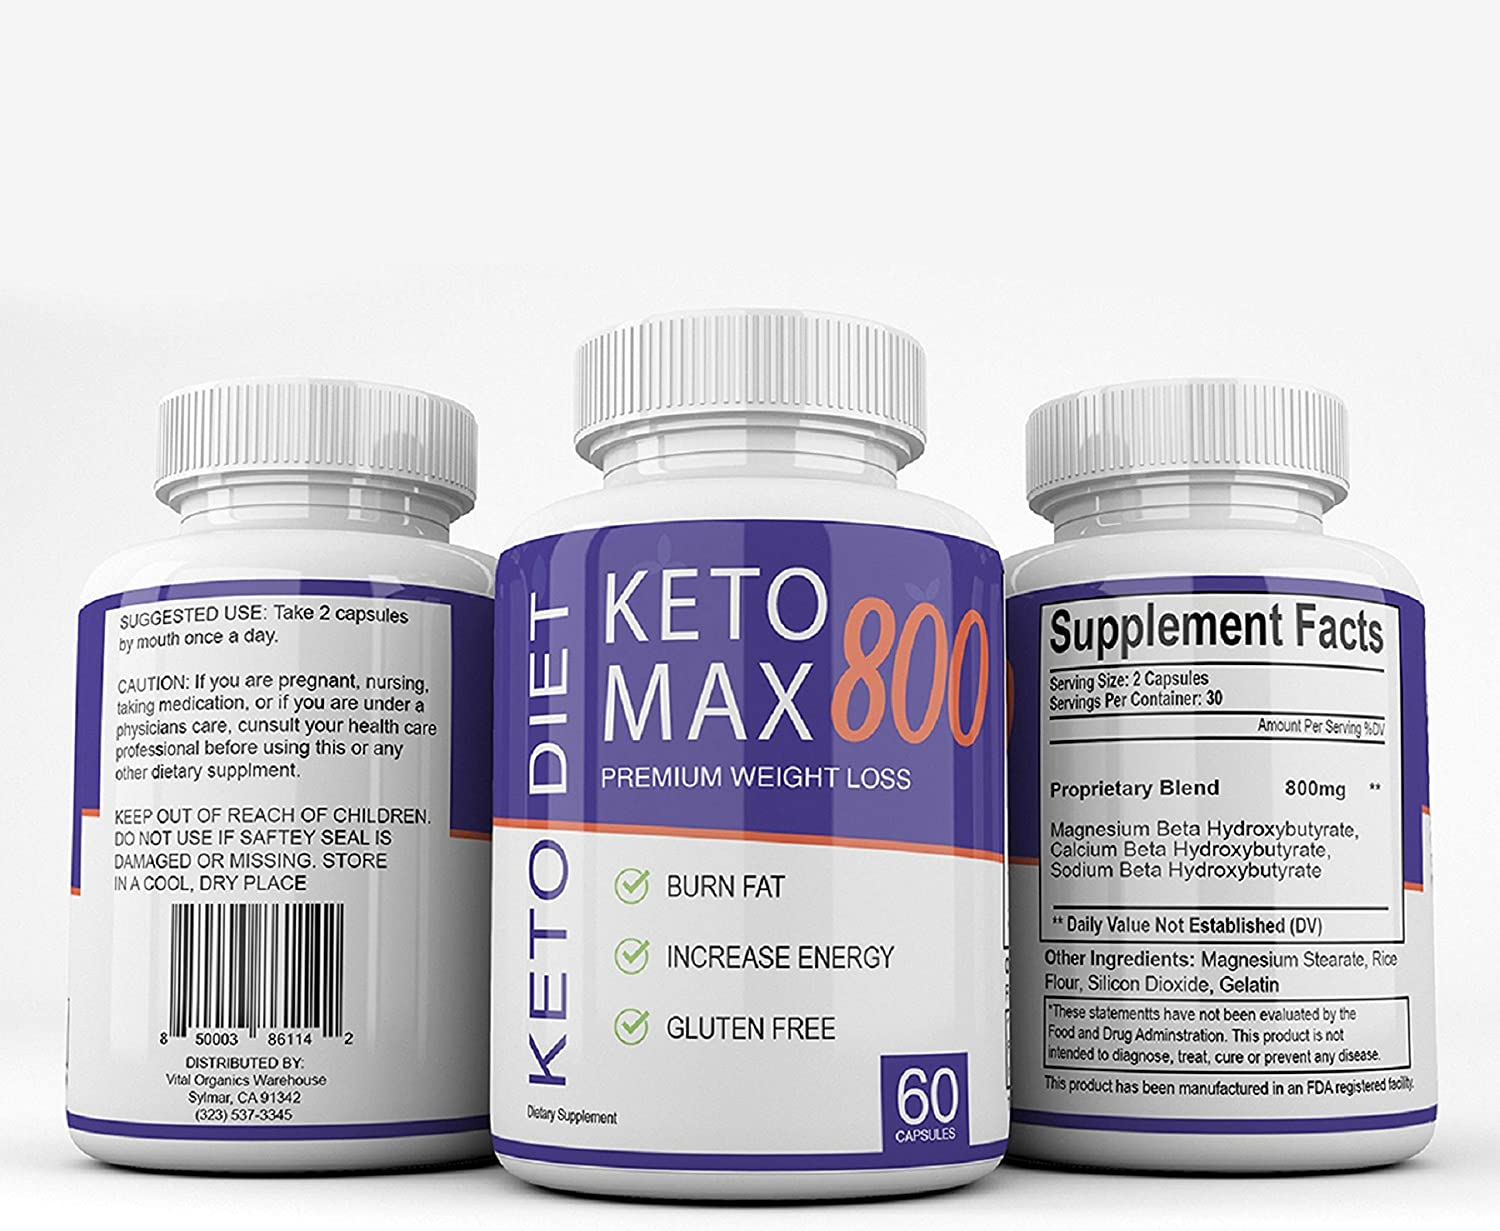 How To Order Keto Now Max Pills